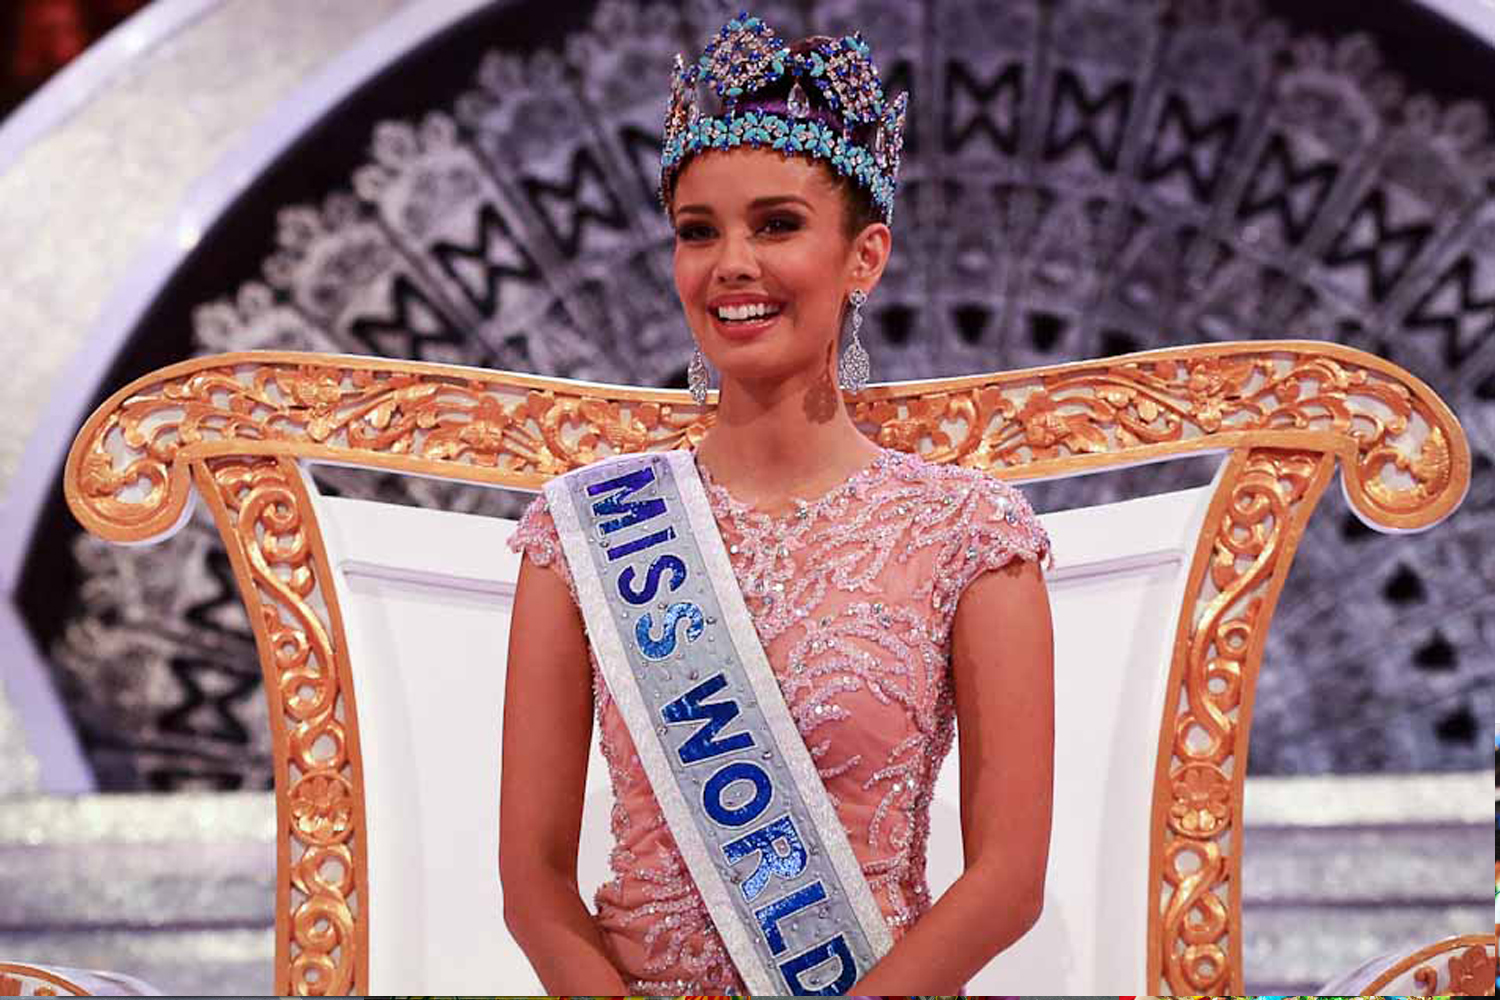 Fashion Beauty World Facebook: Devina DeDiva Insults Miss World 2013, Megan Young